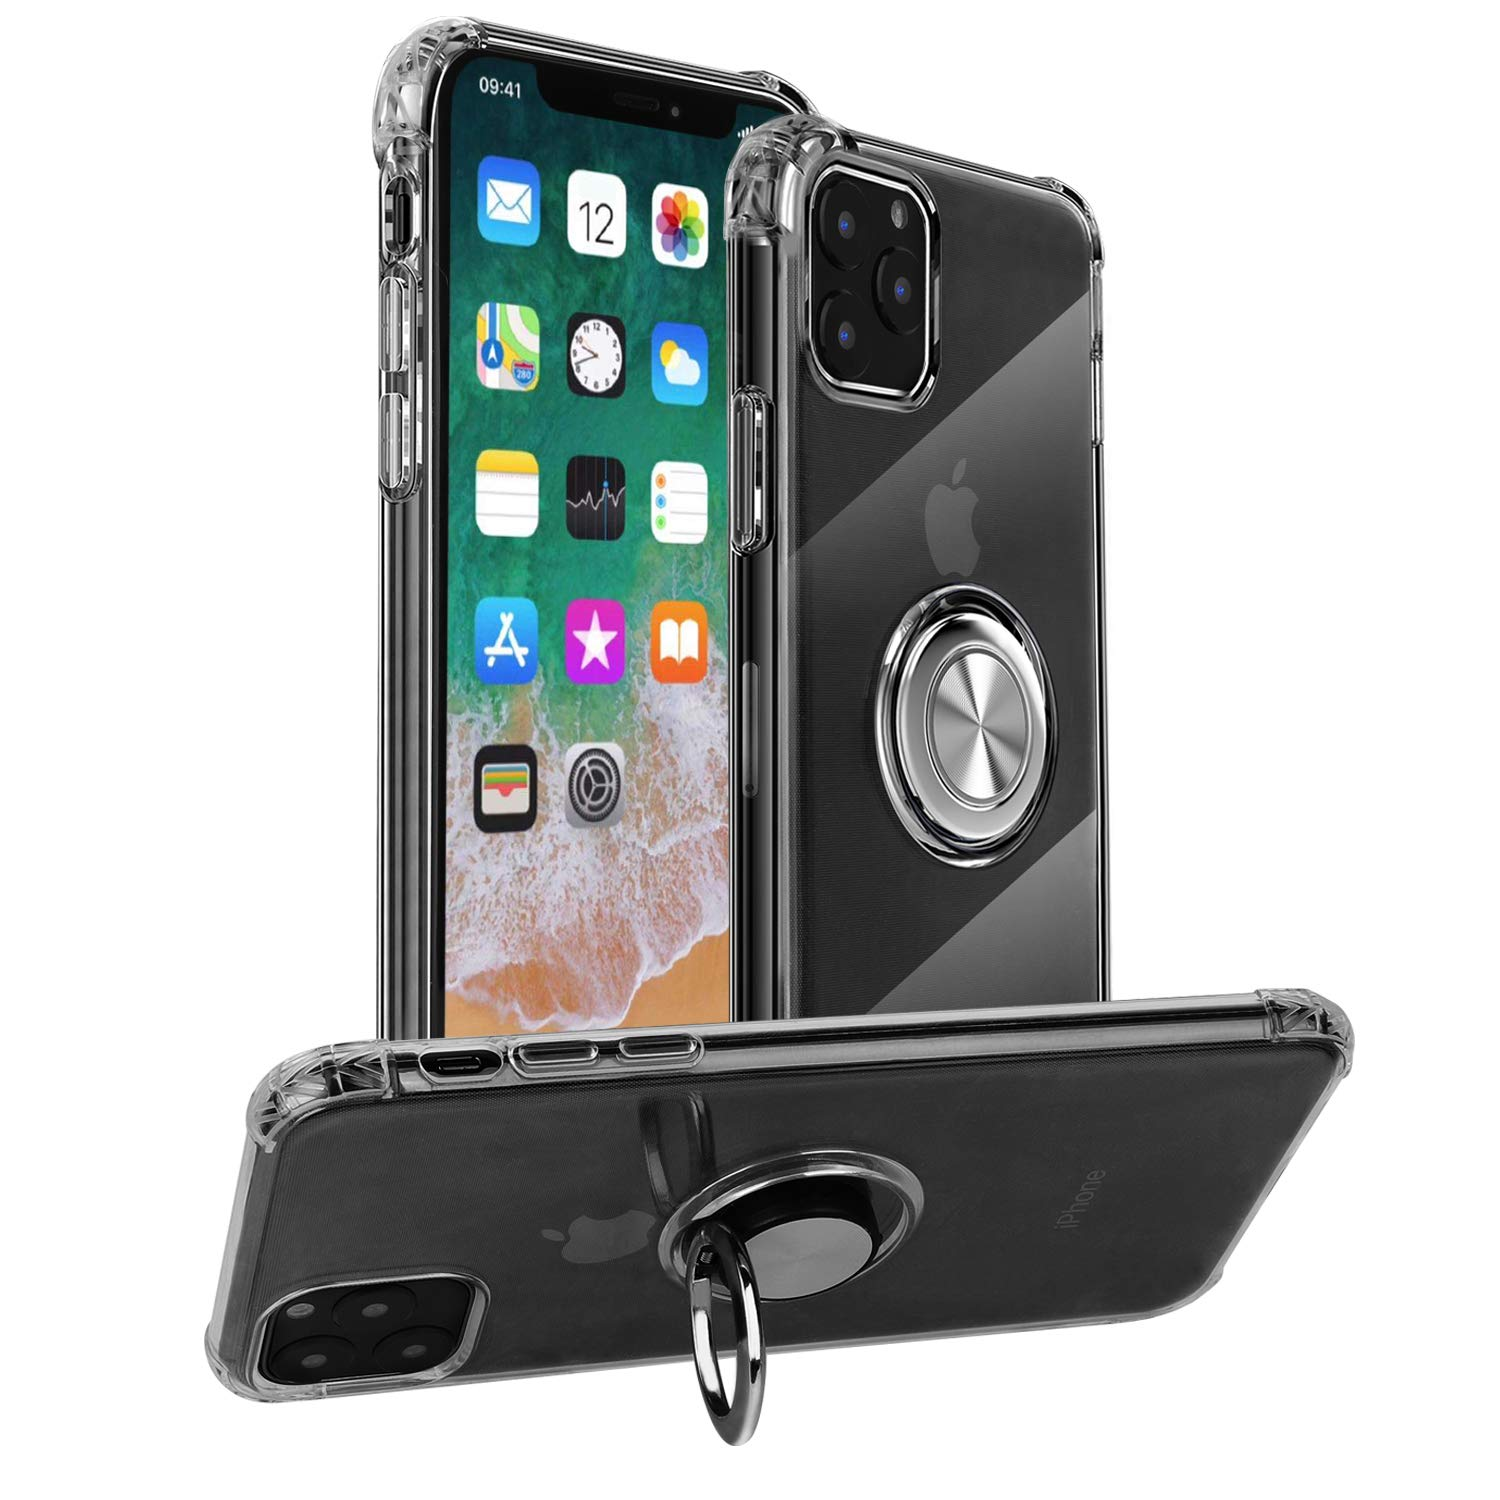 mgACC Clear Case for iPhone 11 Pro Case,with 360 Degree Rotation Pop-up Finger Ring Grip Holder Kickstand [Work with Magnetic Car Mount] for iPhone 5.8 inch(2019 Release)/Transparent